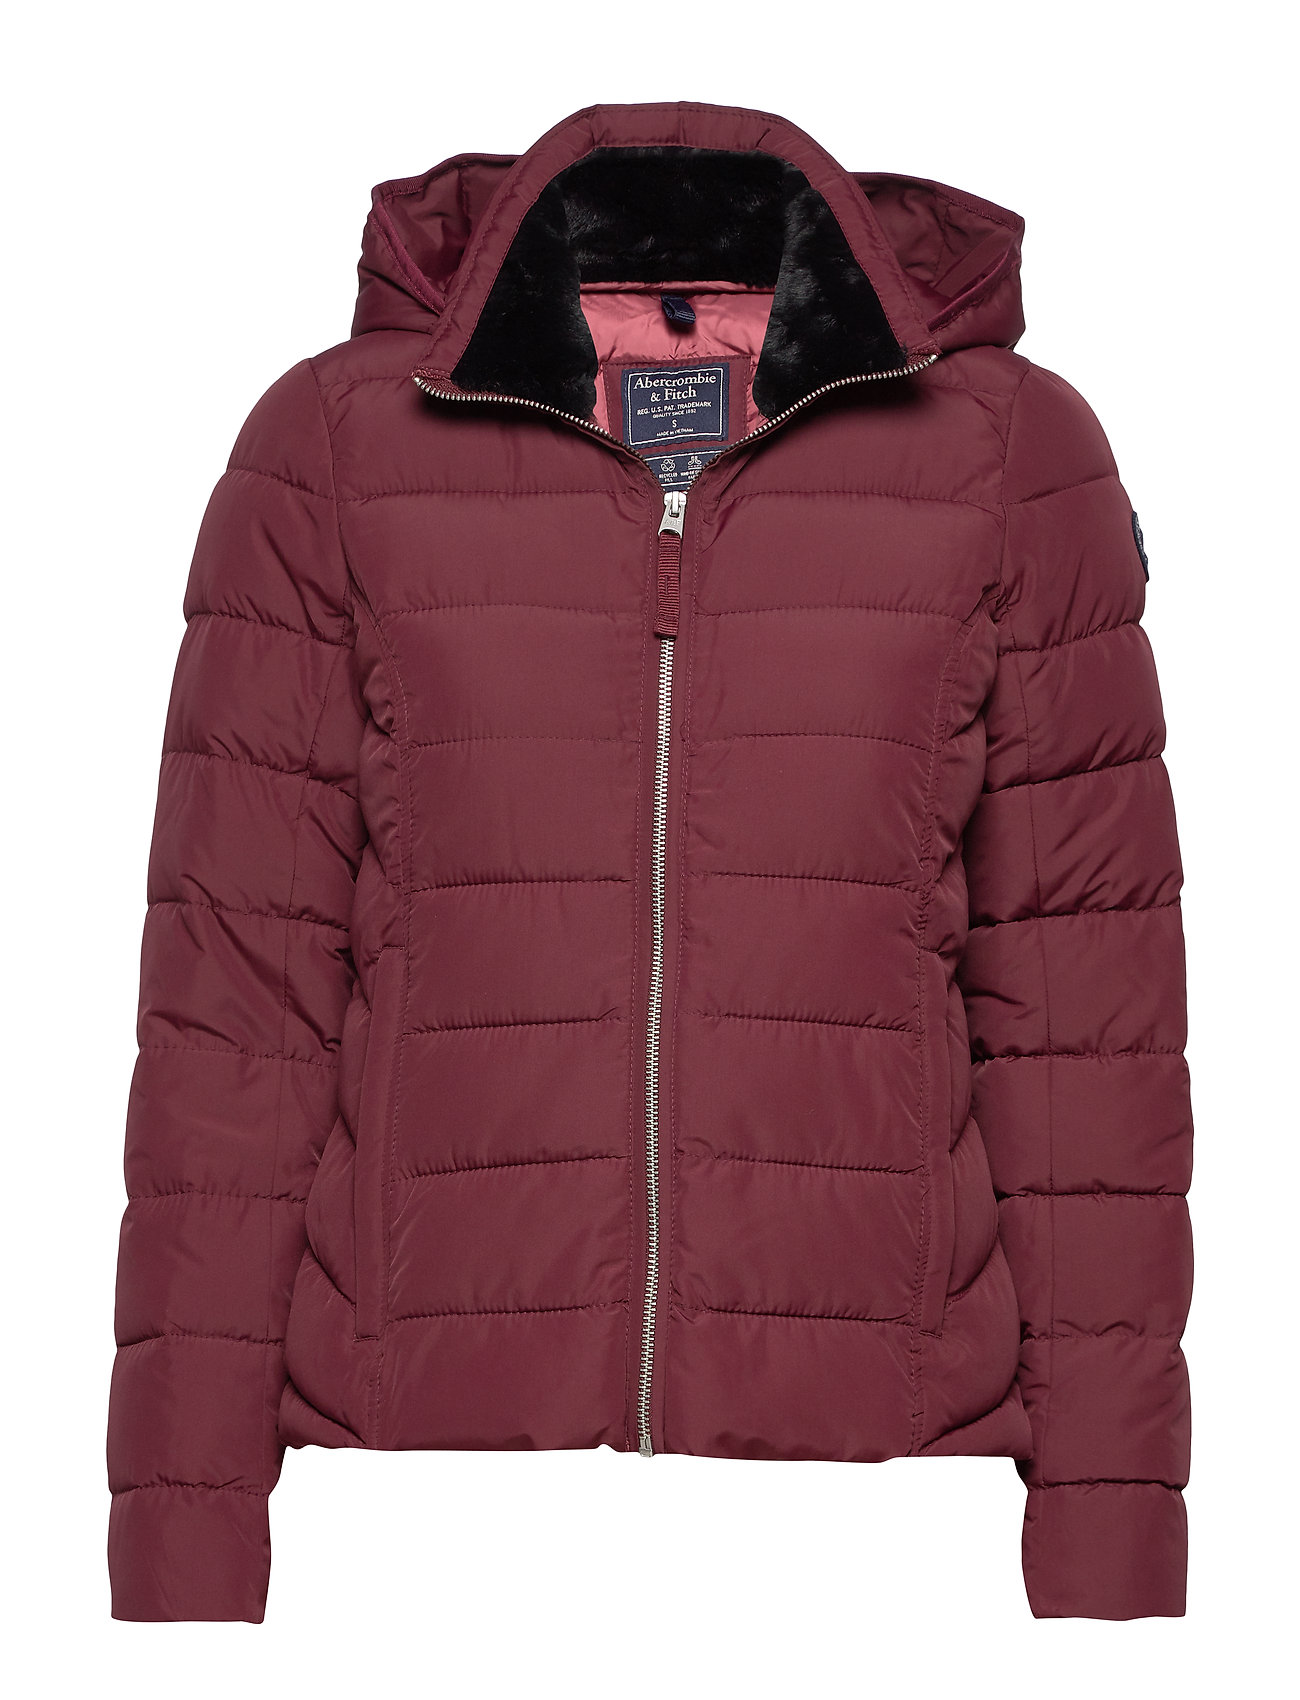 Abercrombie & Fitch Packable Puffer Coat - BURGUNDY DD